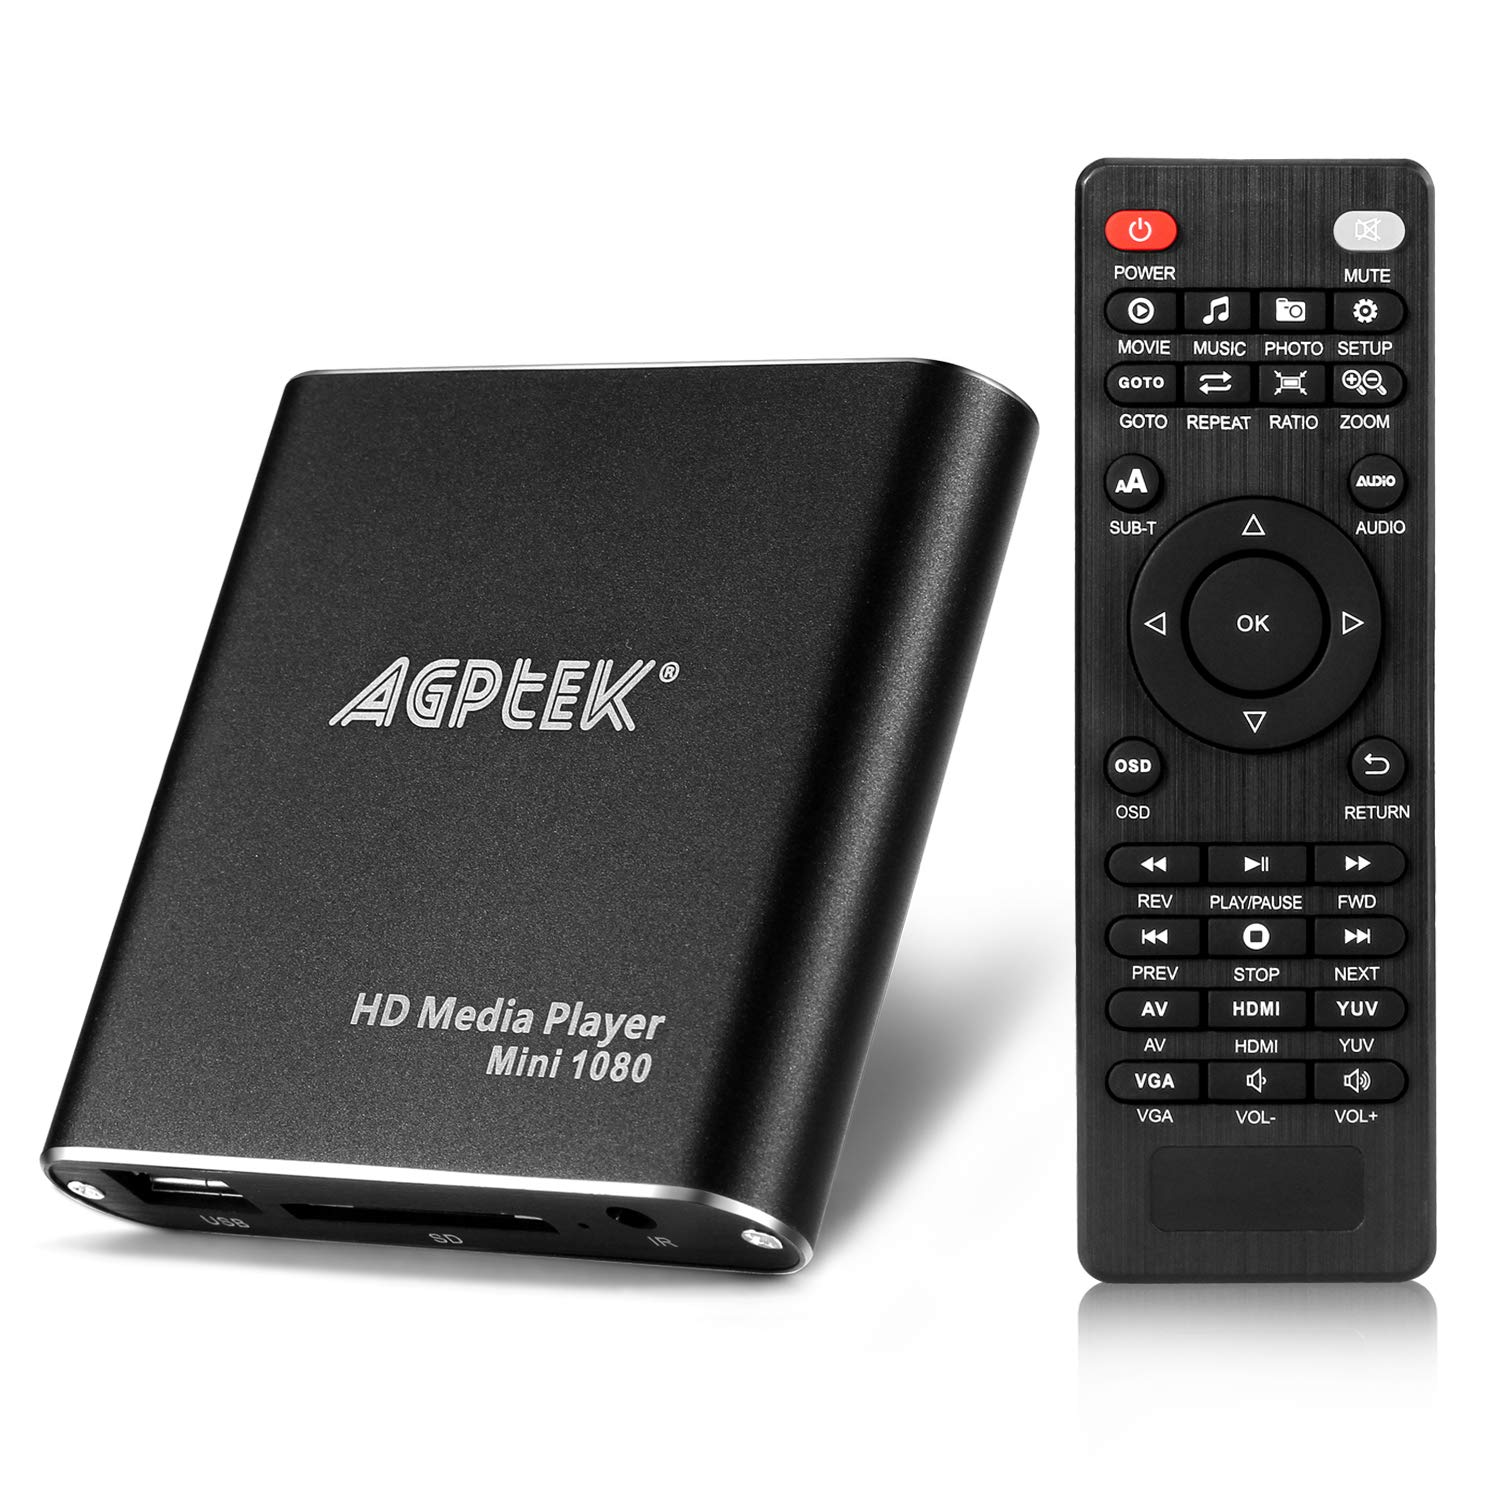 HDMI Media Player, AGPtek Black Mini 1080p Full-HD Ultra HDMI Digital Media Player for -MKV/RM- HDD USB Drives and SD Cards by AGPTEK